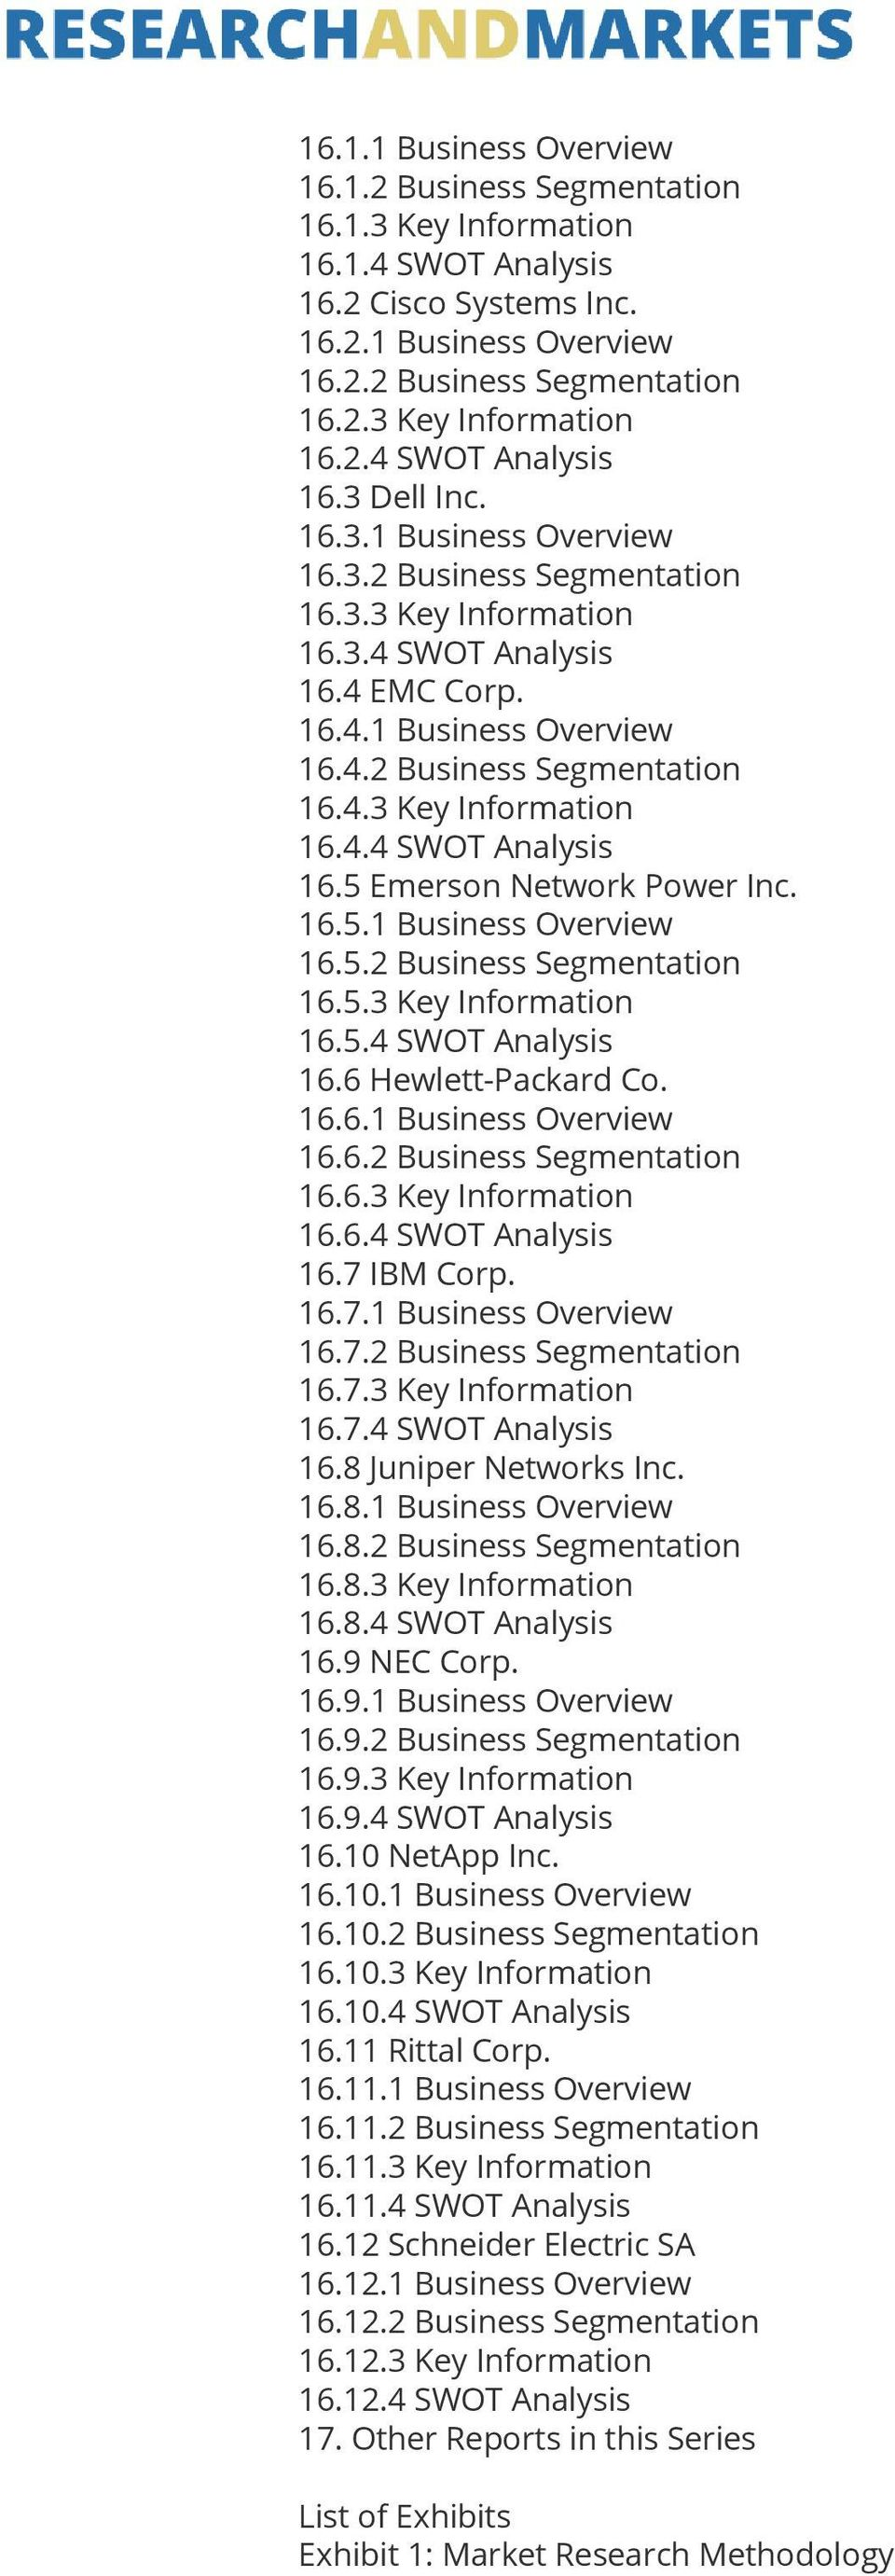 16.5.1 Business Overview 16.5.2 Business Segmentation 16.5.3 Key Information 16.5.4 SWOT Analysis 16.6 Hewlett-Packard Co. 16.6.1 Business Overview 16.6.2 Business Segmentation 16.6.3 Key Information 16.6.4 SWOT Analysis 16.7 IBM Corp.